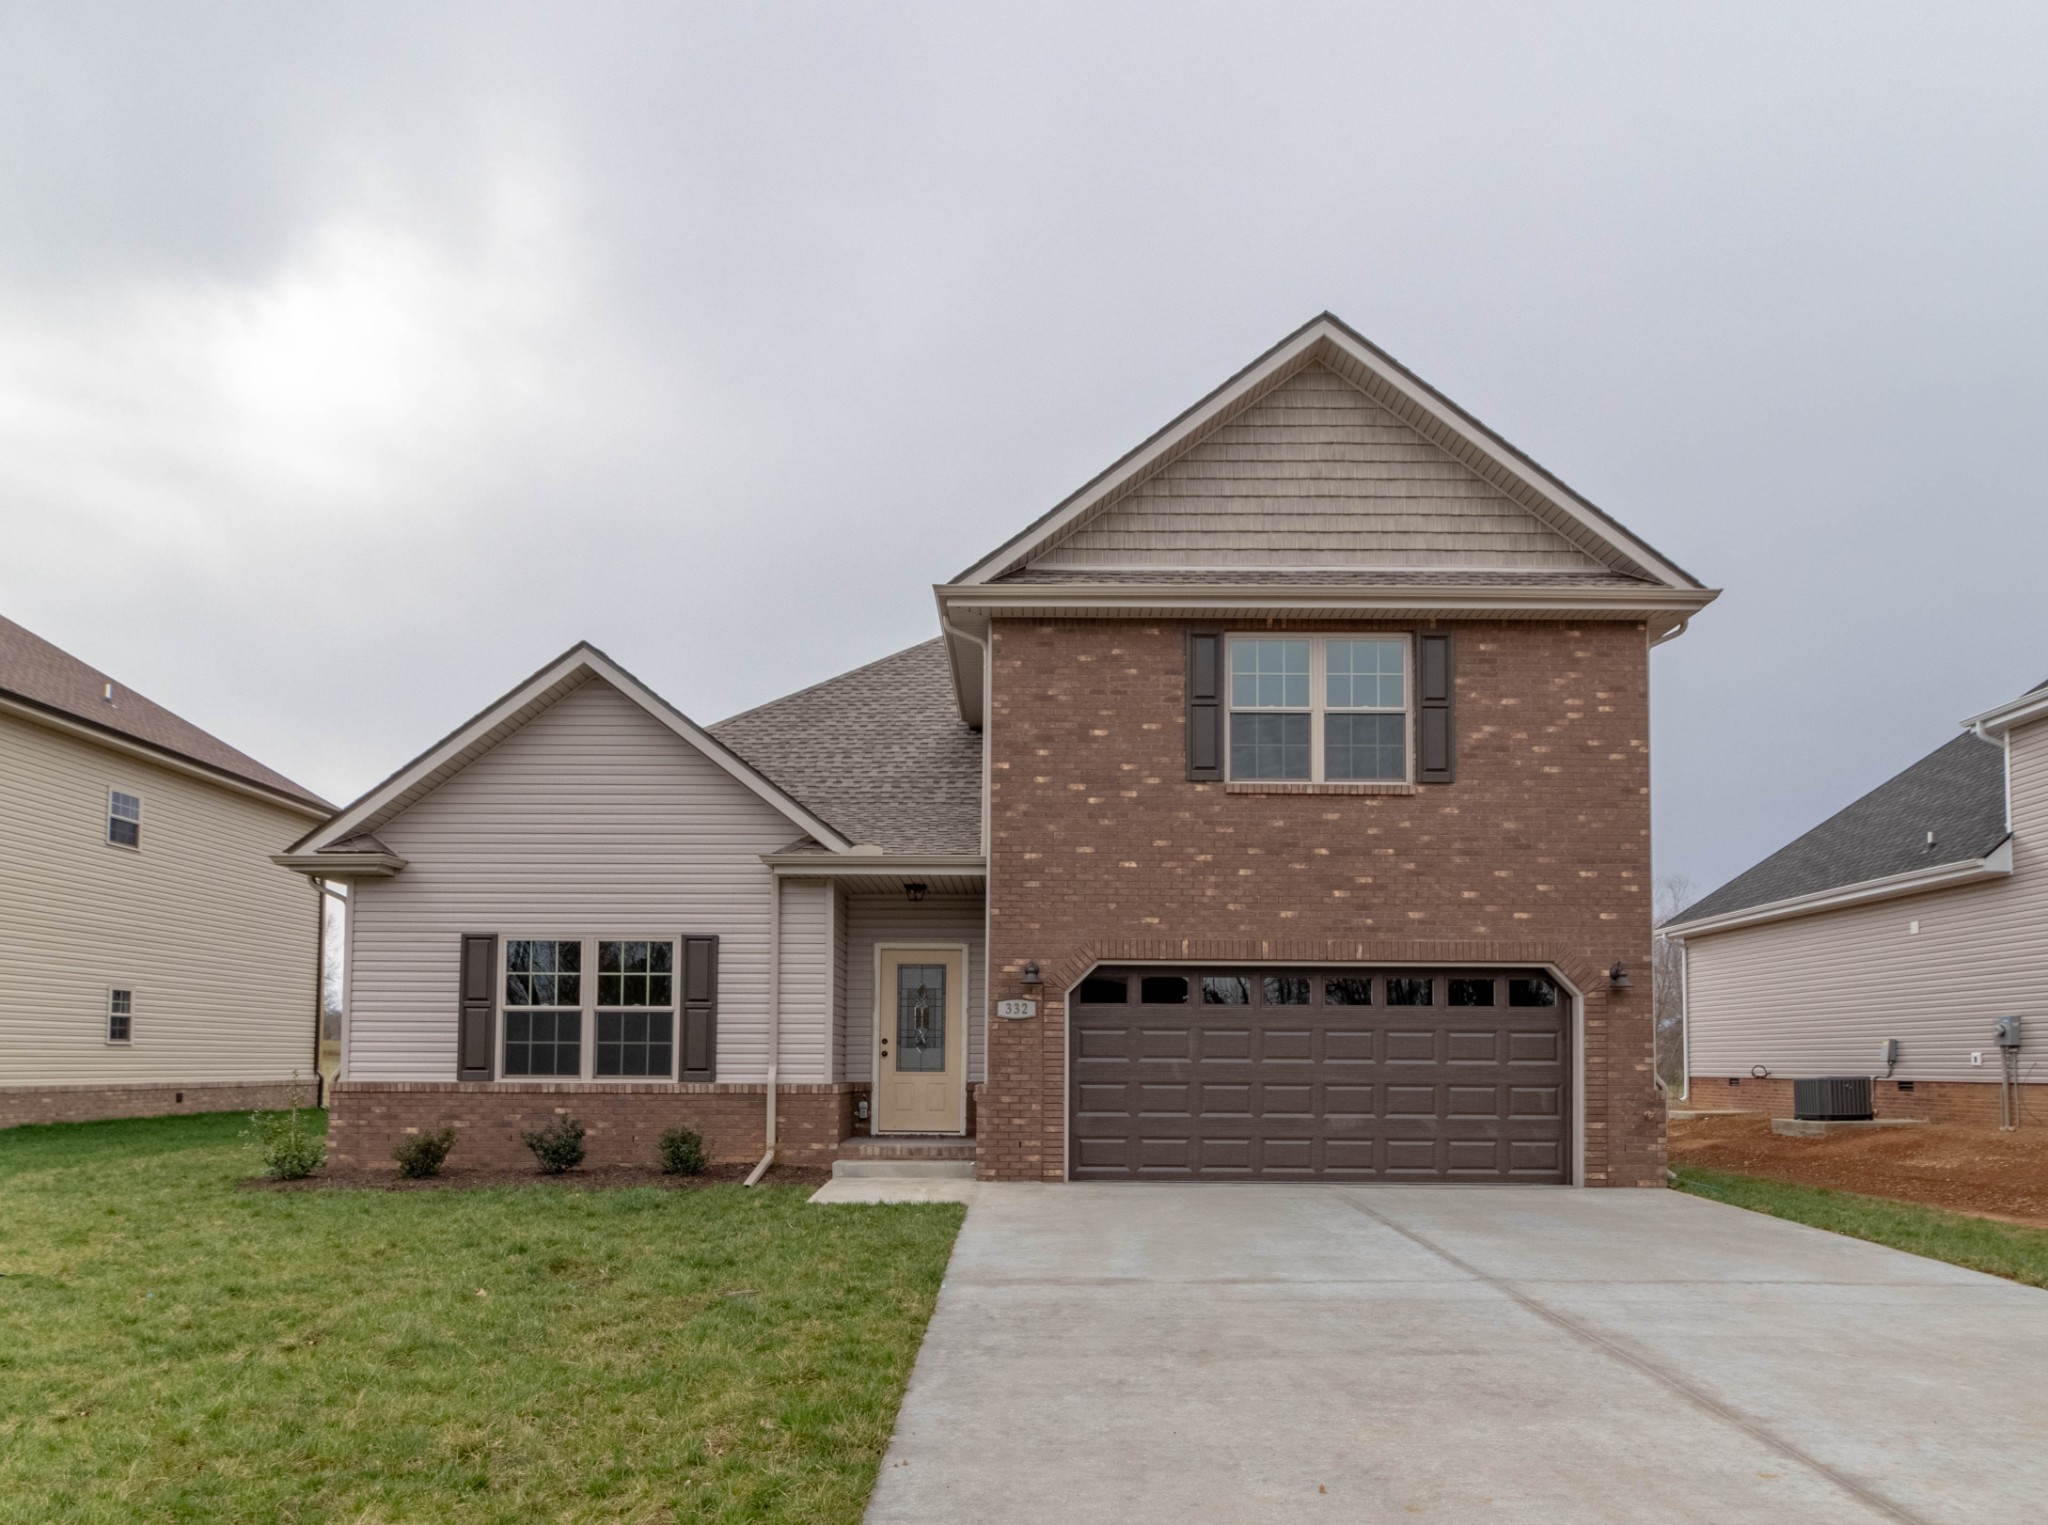 333 Chase Dr Property Photo - Clarksville, TN real estate listing